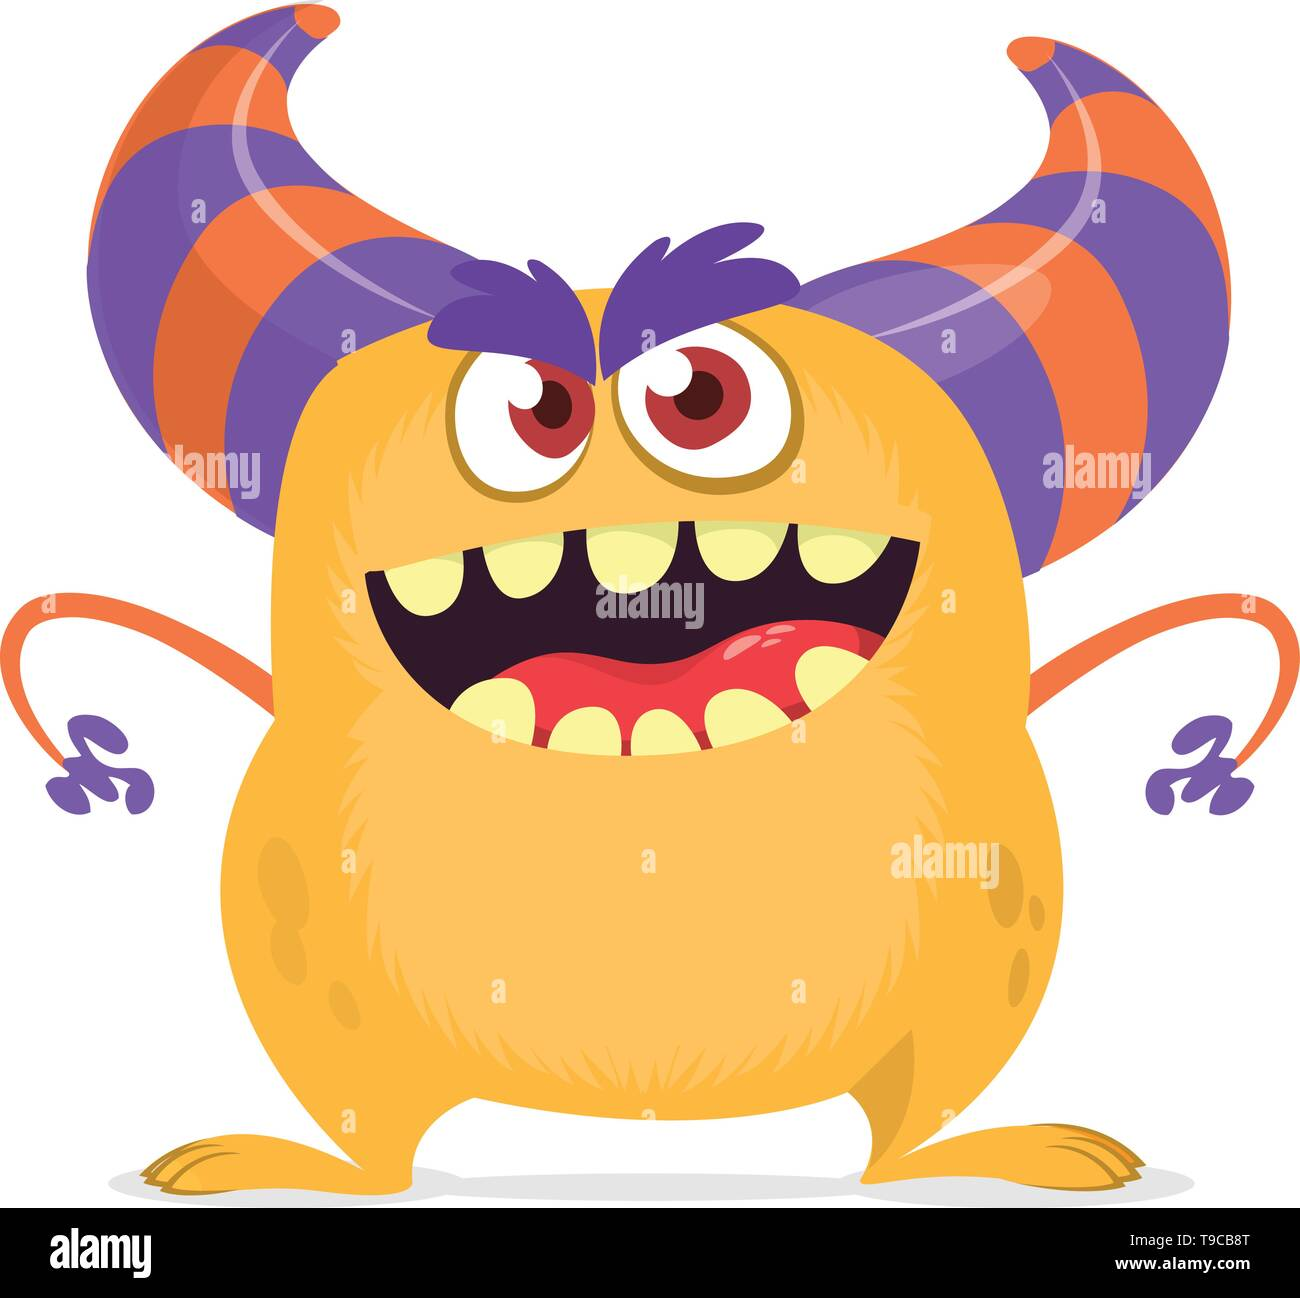 Scared cartoon monster with big mouth. Vector orange monster illustration. Halloween design - Stock Image